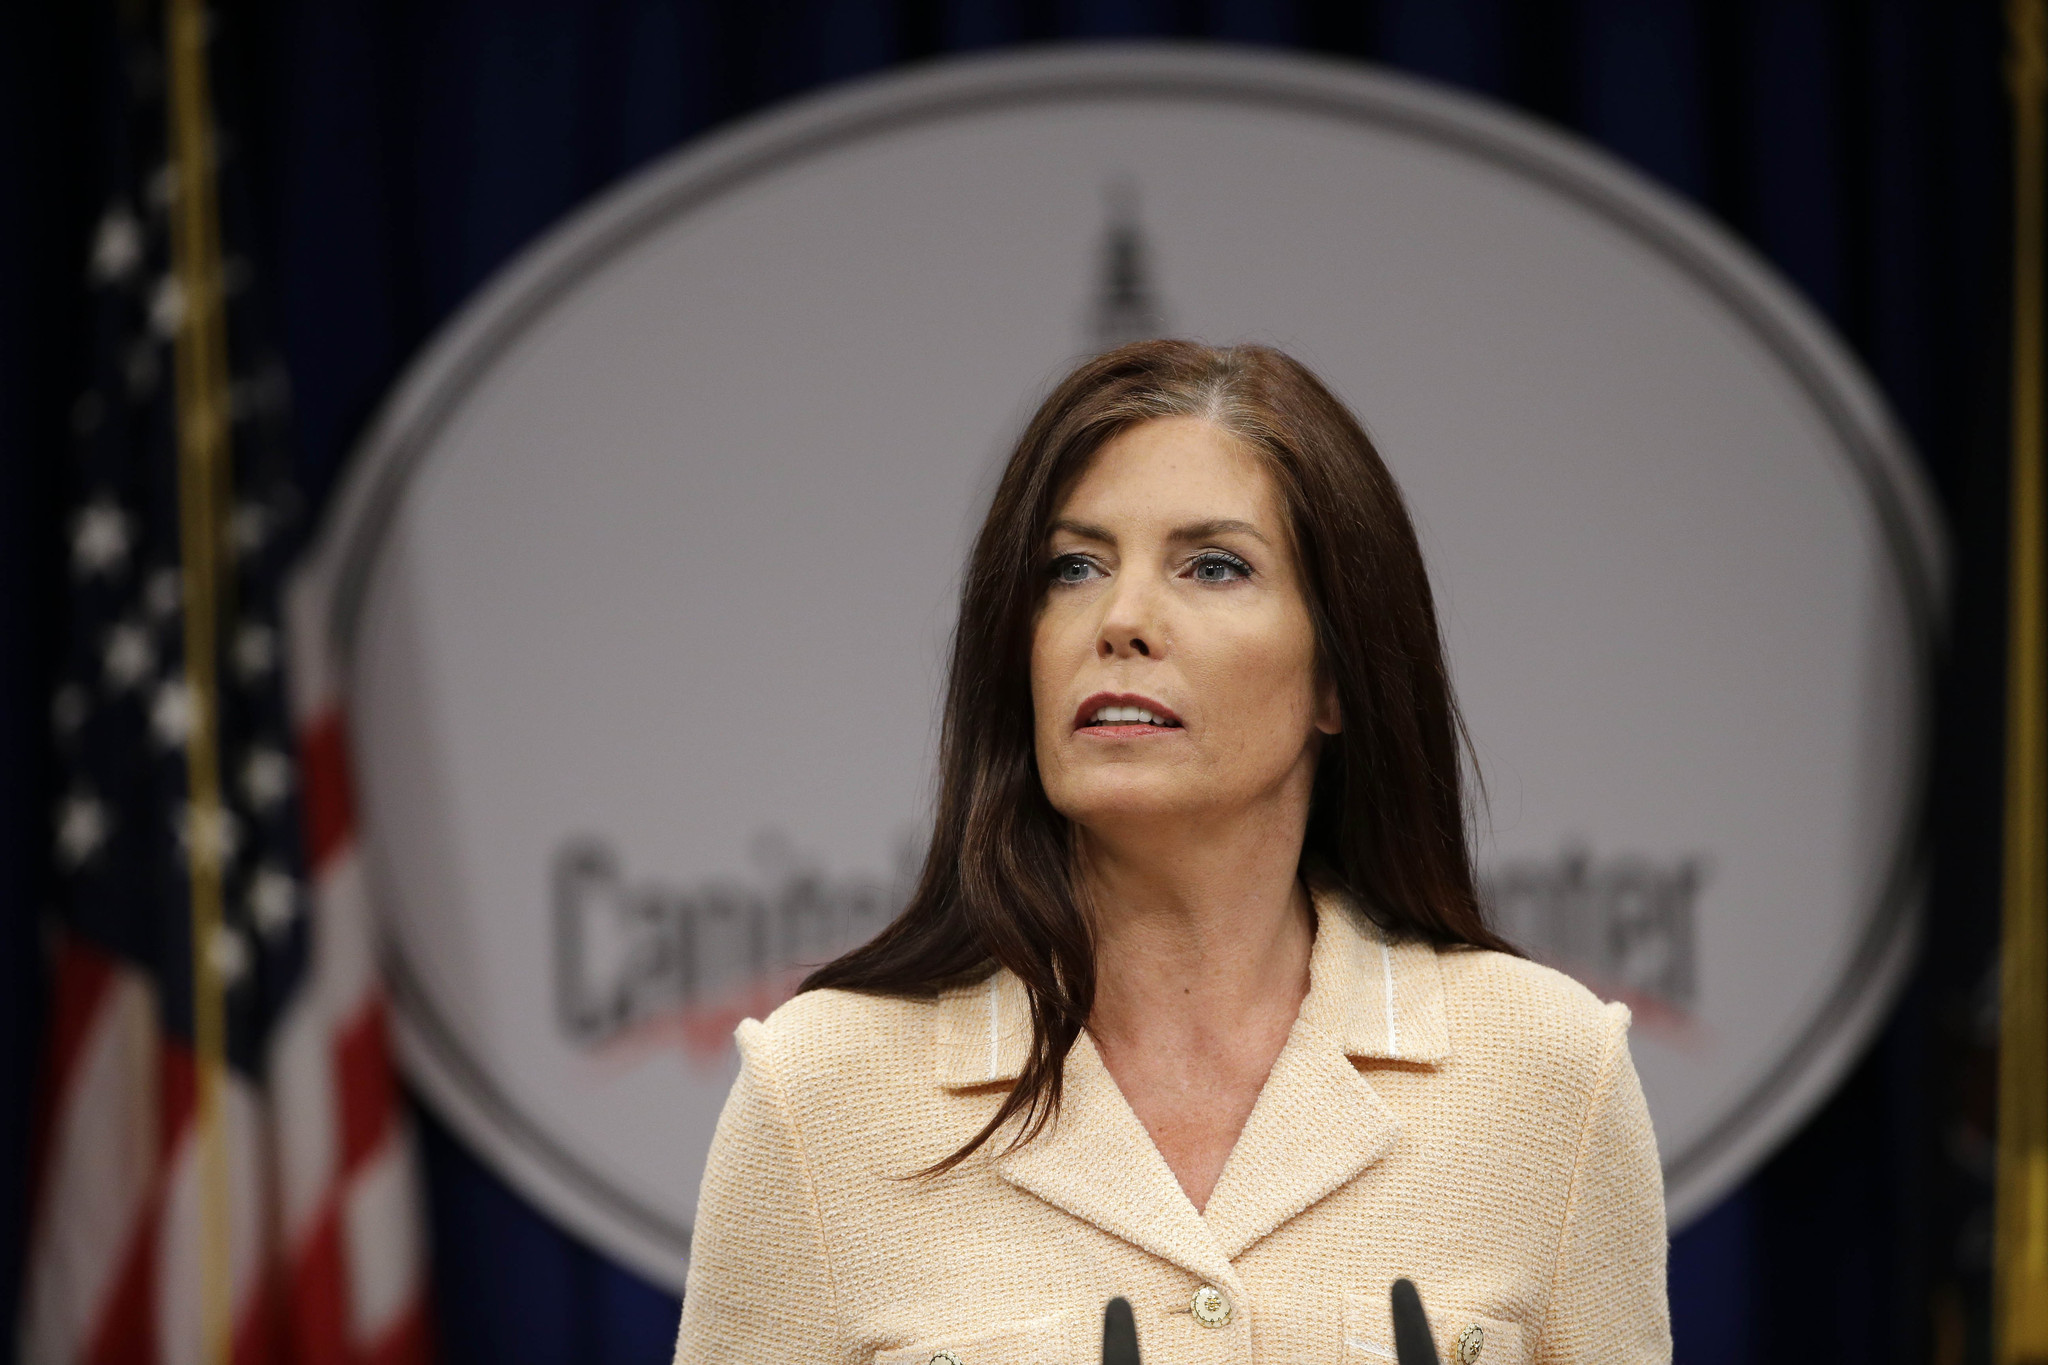 Kathleen Kane maintains innocence, points to her exposure of